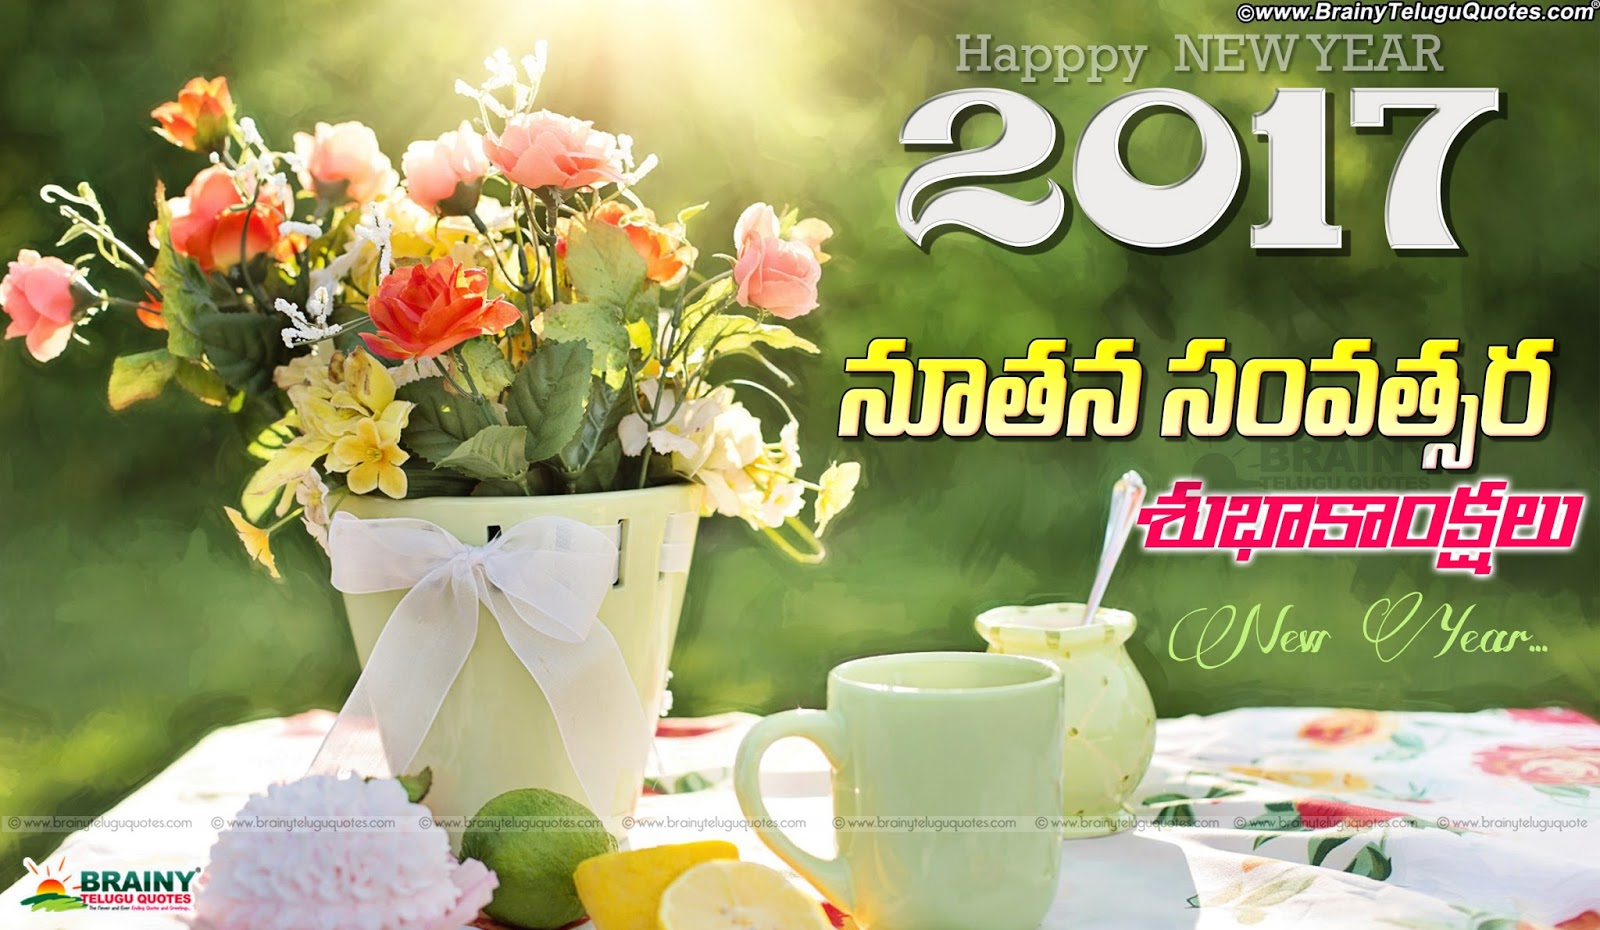 Happy New Year 2017 Telugu SMS Images Wishes Greetings ...